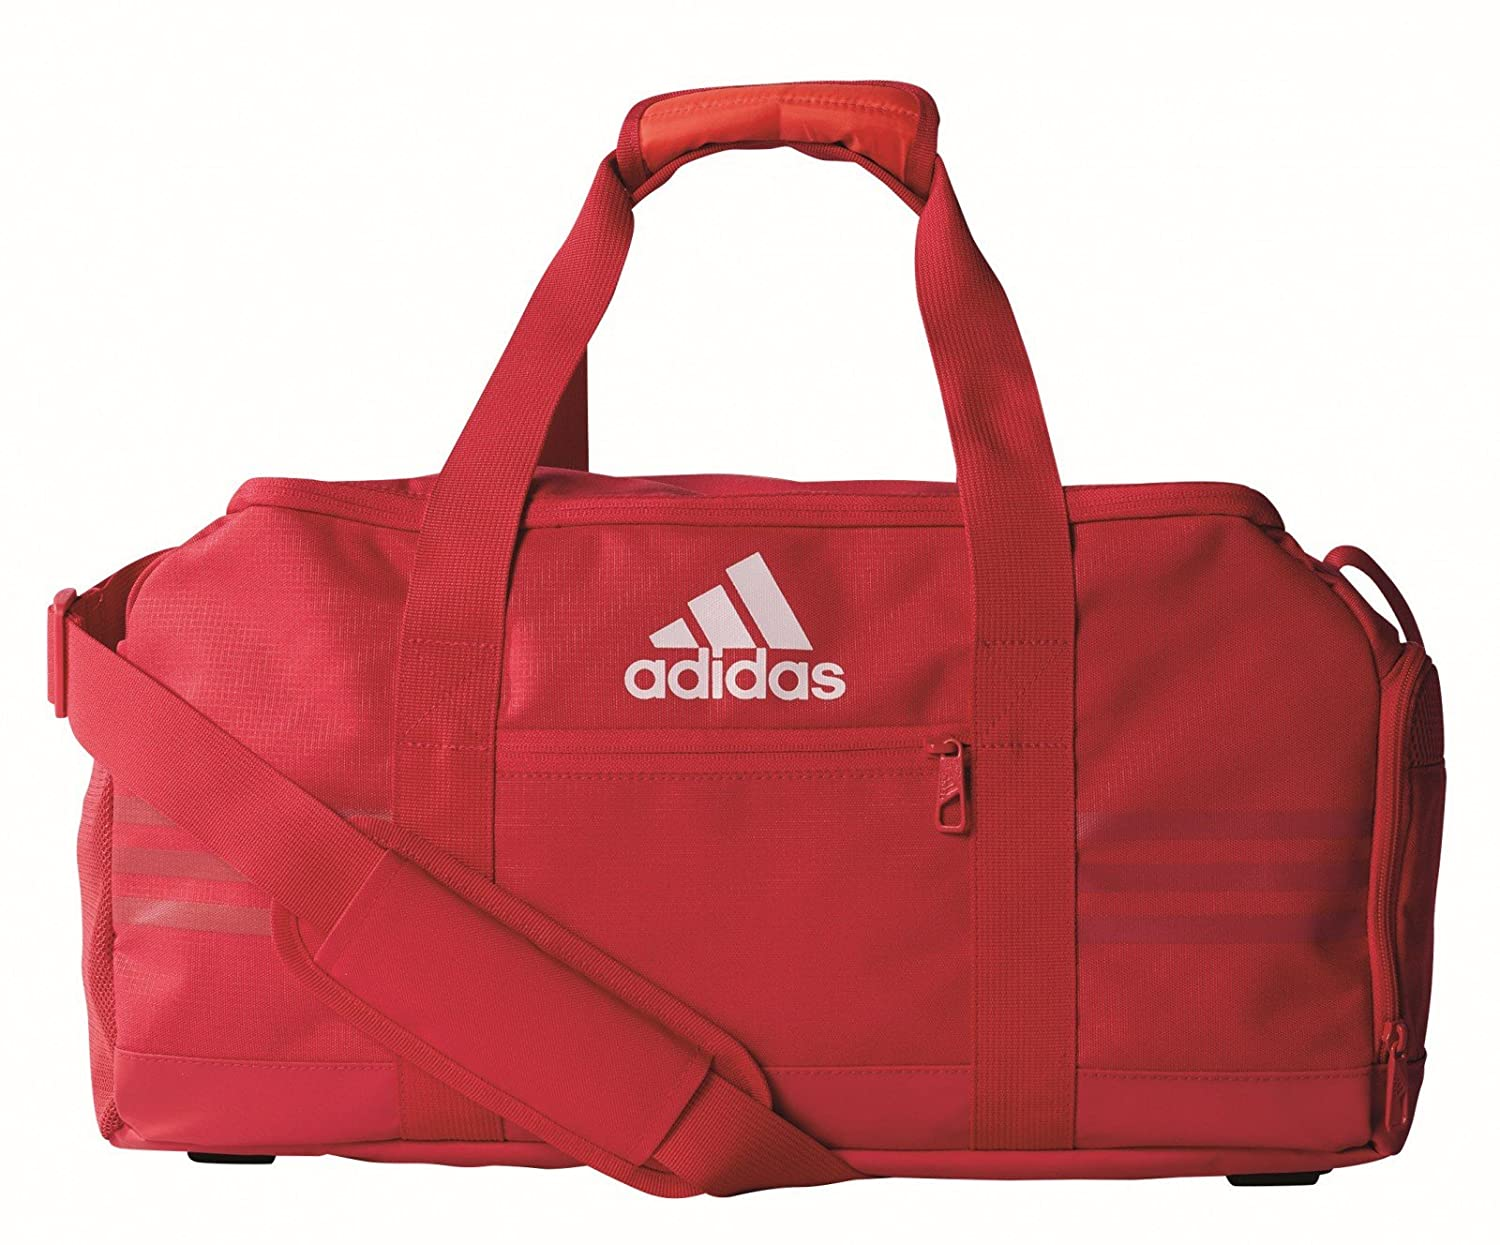 adidas 3 Stripes Performance Sporttasche